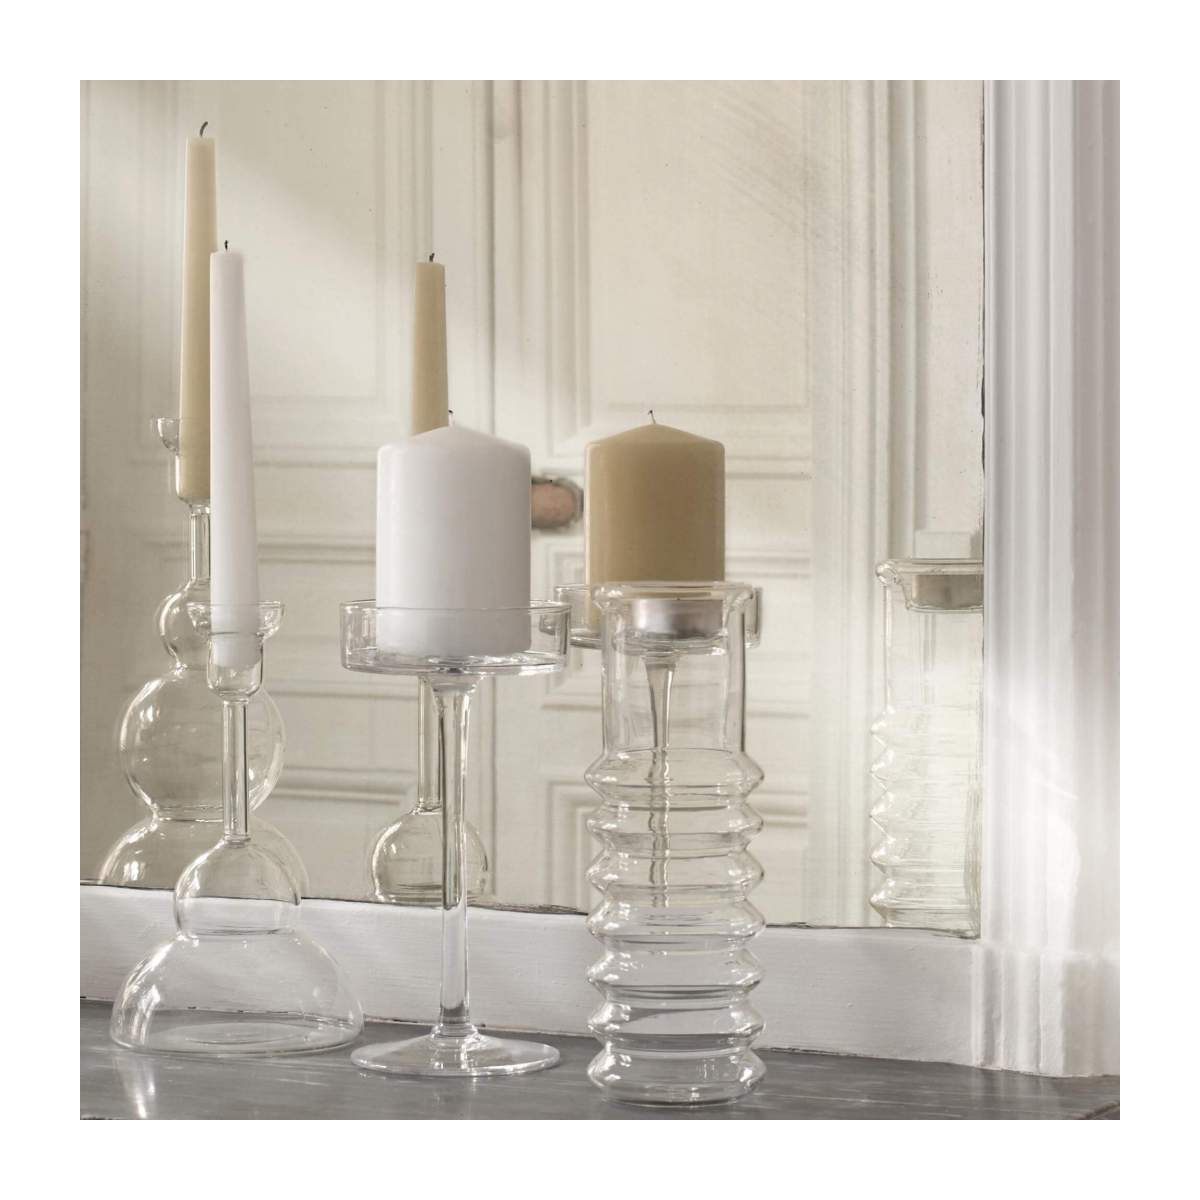 Small glass candlestick n°4